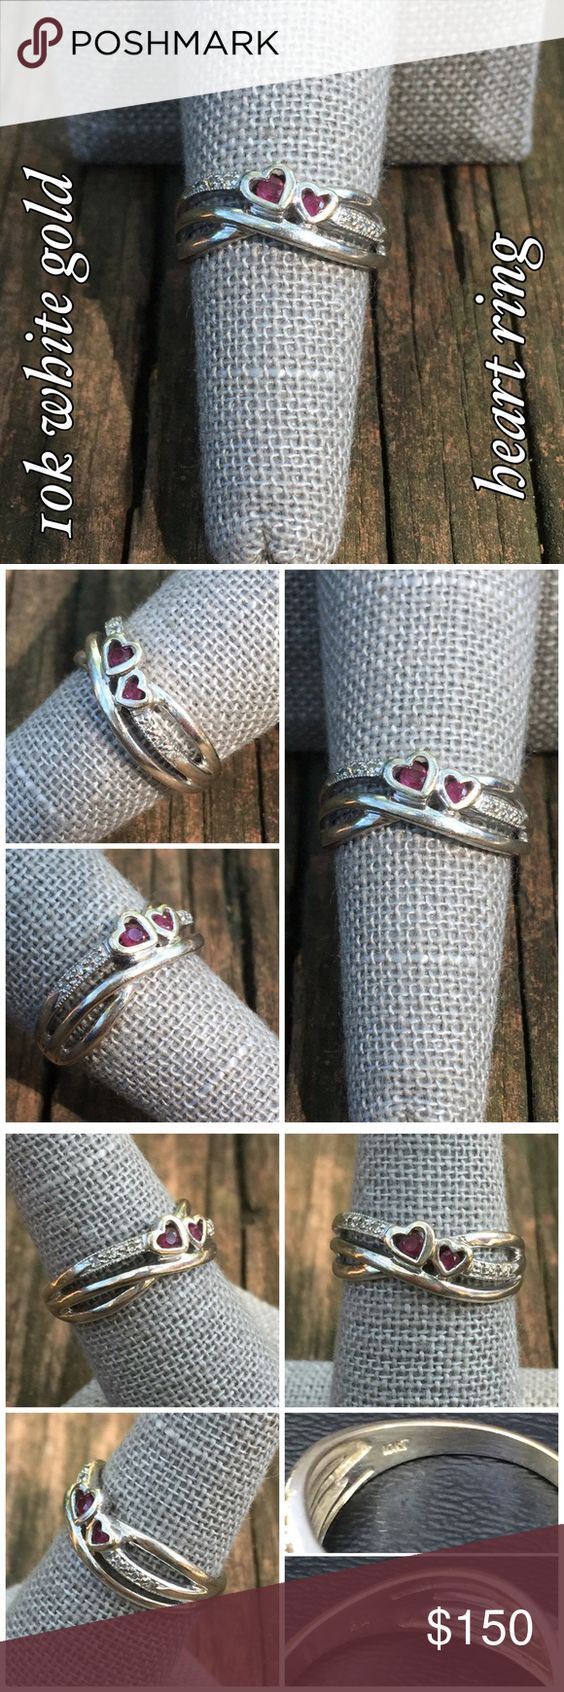 10k White Gold Vtg Ruby w/ Diamond Accents Ring Beautiful 10k Solid White Gold Vintage Ruby